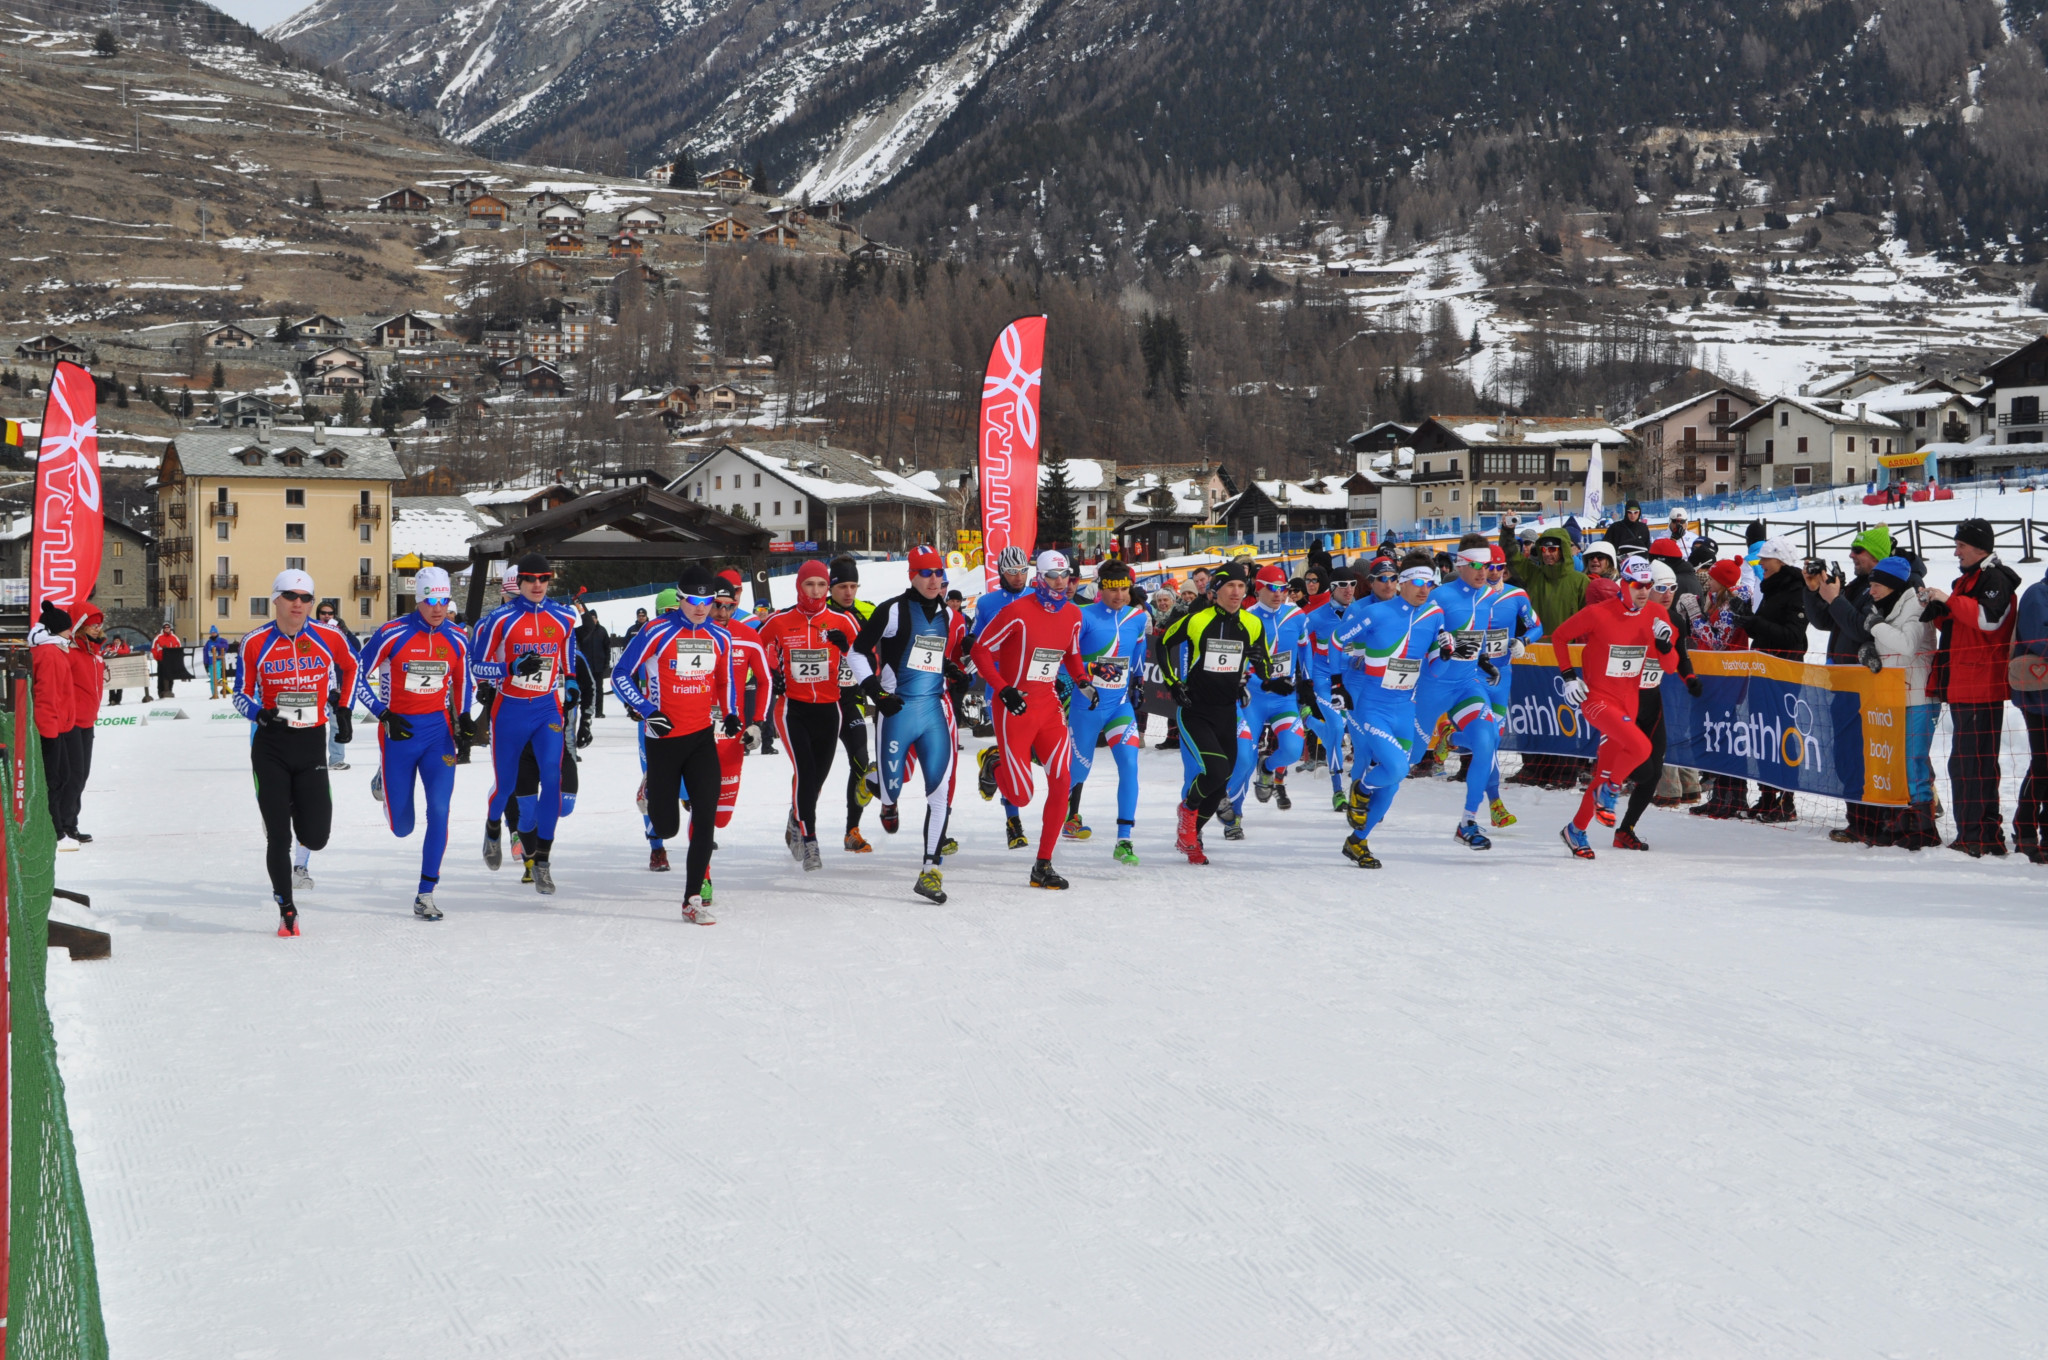 Asiago is set to welcome the world's top winter triathletes at next year's event ©European Triathlon